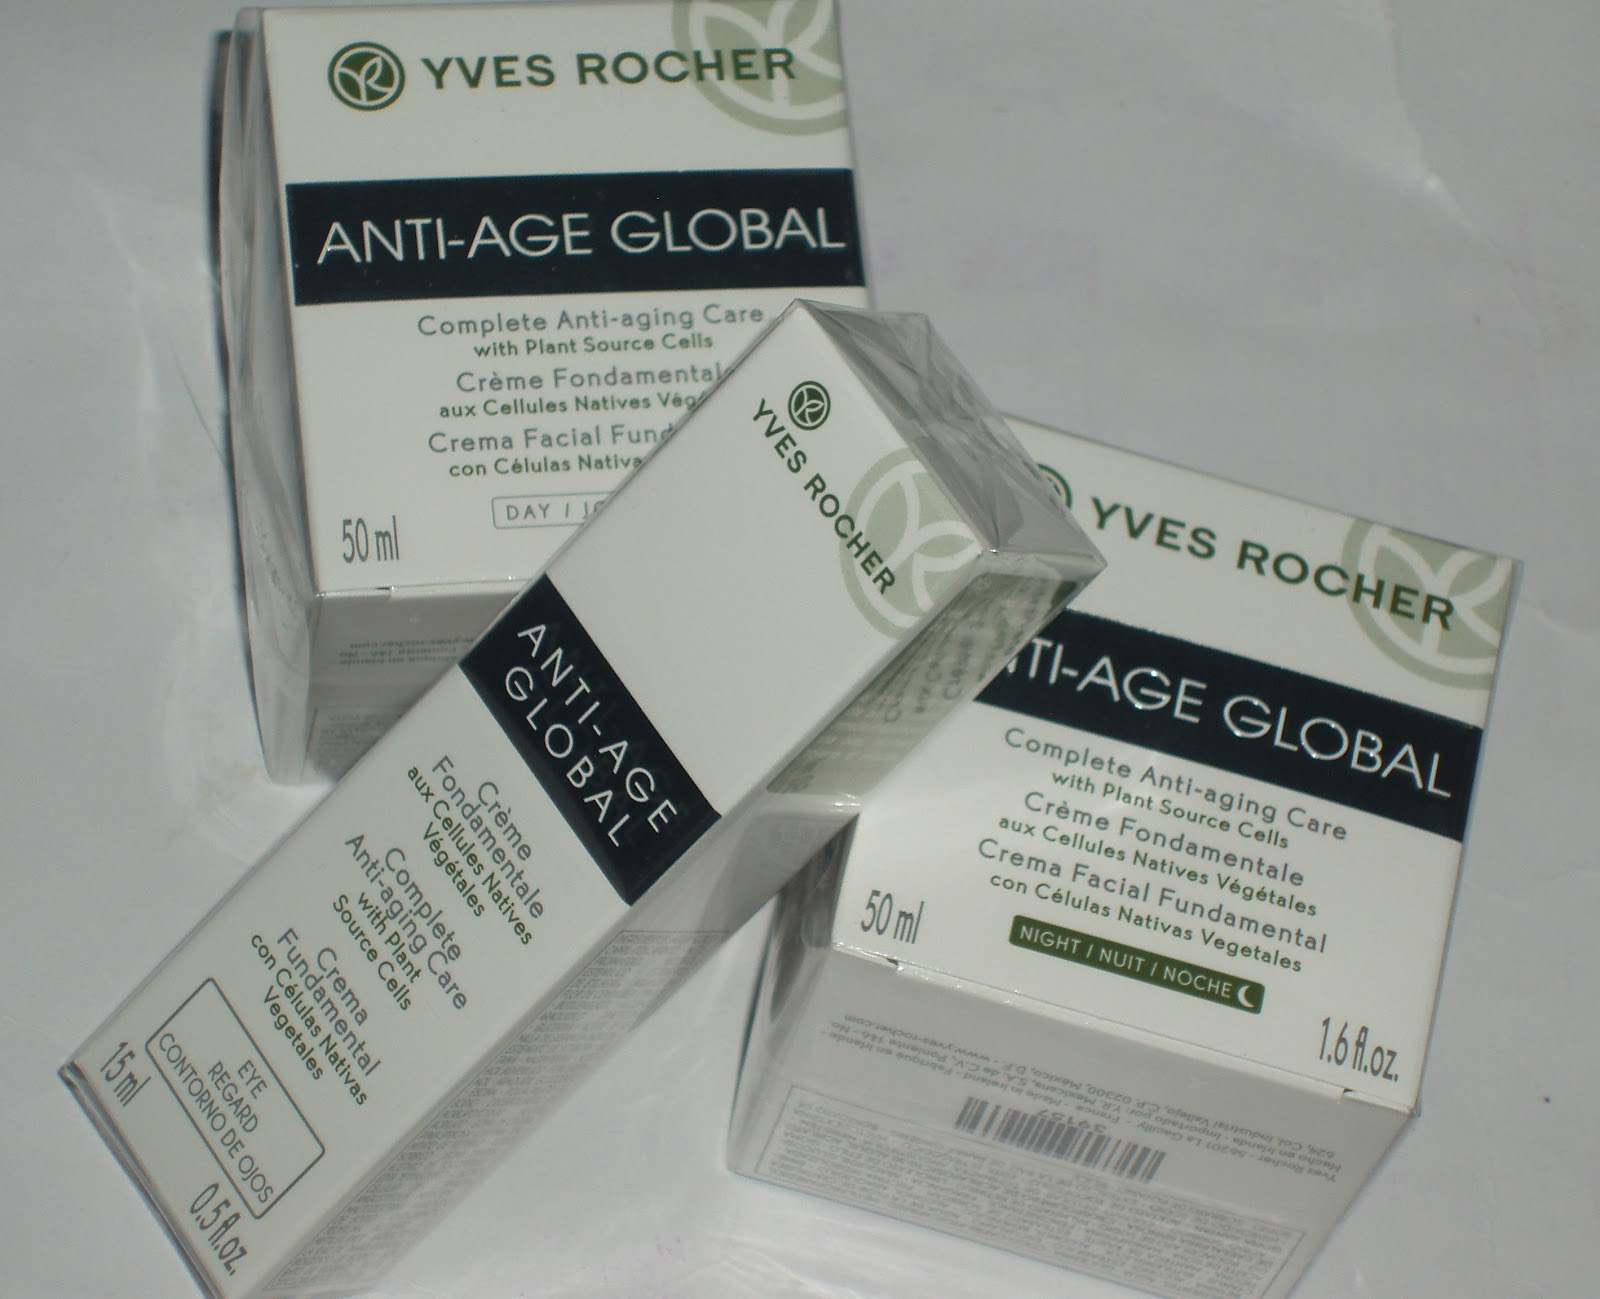 Yves Rocher Anti Age Global Haligoniaca